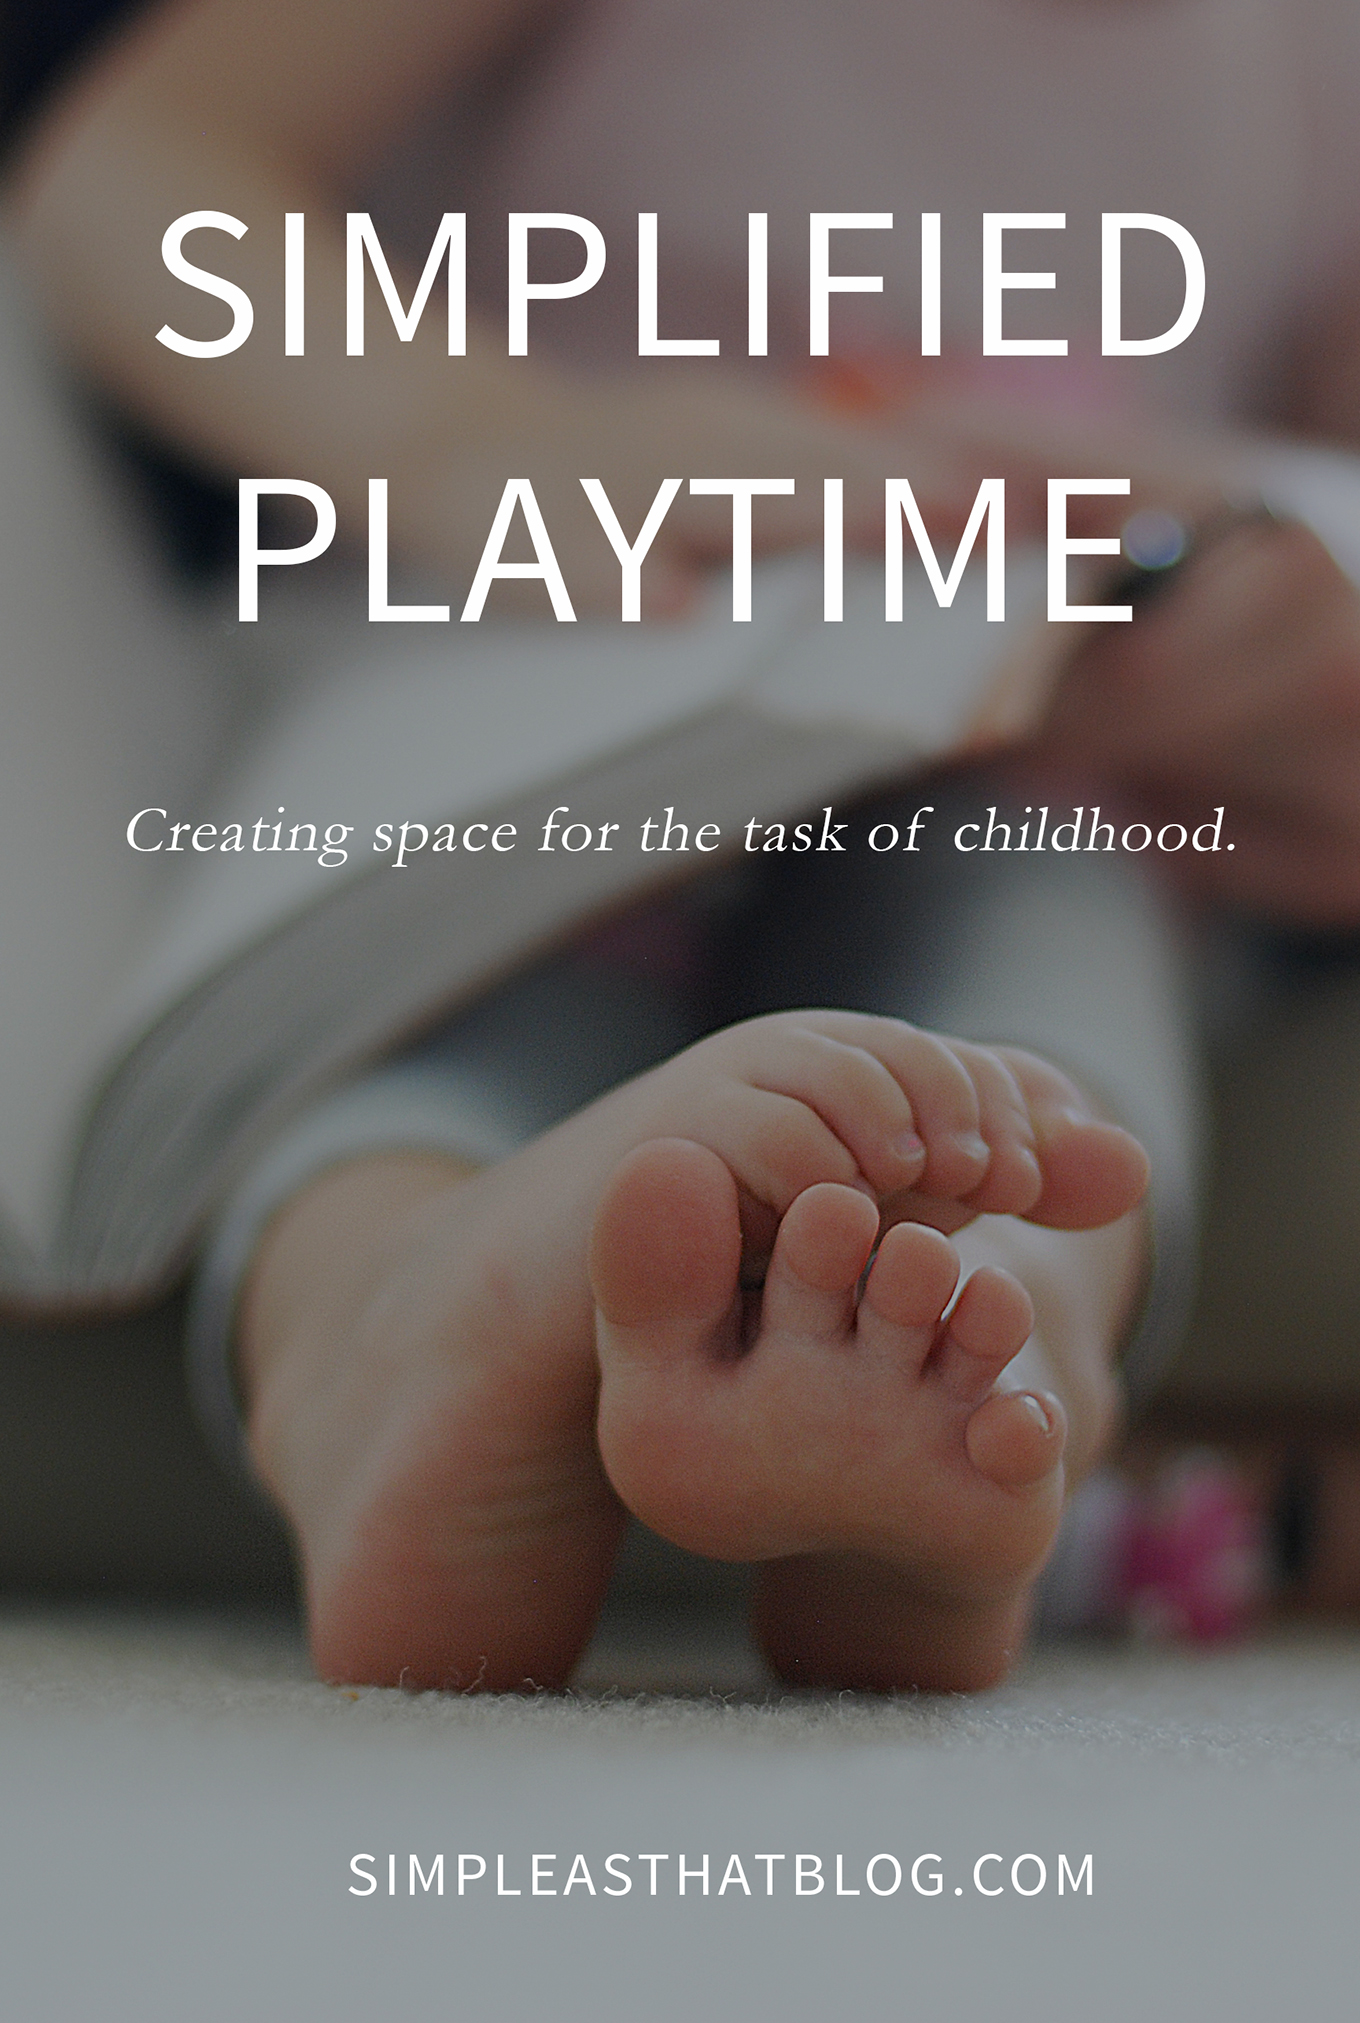 We are the protectors in our children's lives. We can say no to entitlement and say yes to simplifying playtime. What a wonderful gift we can give our kids by creating space for the task of childhood.